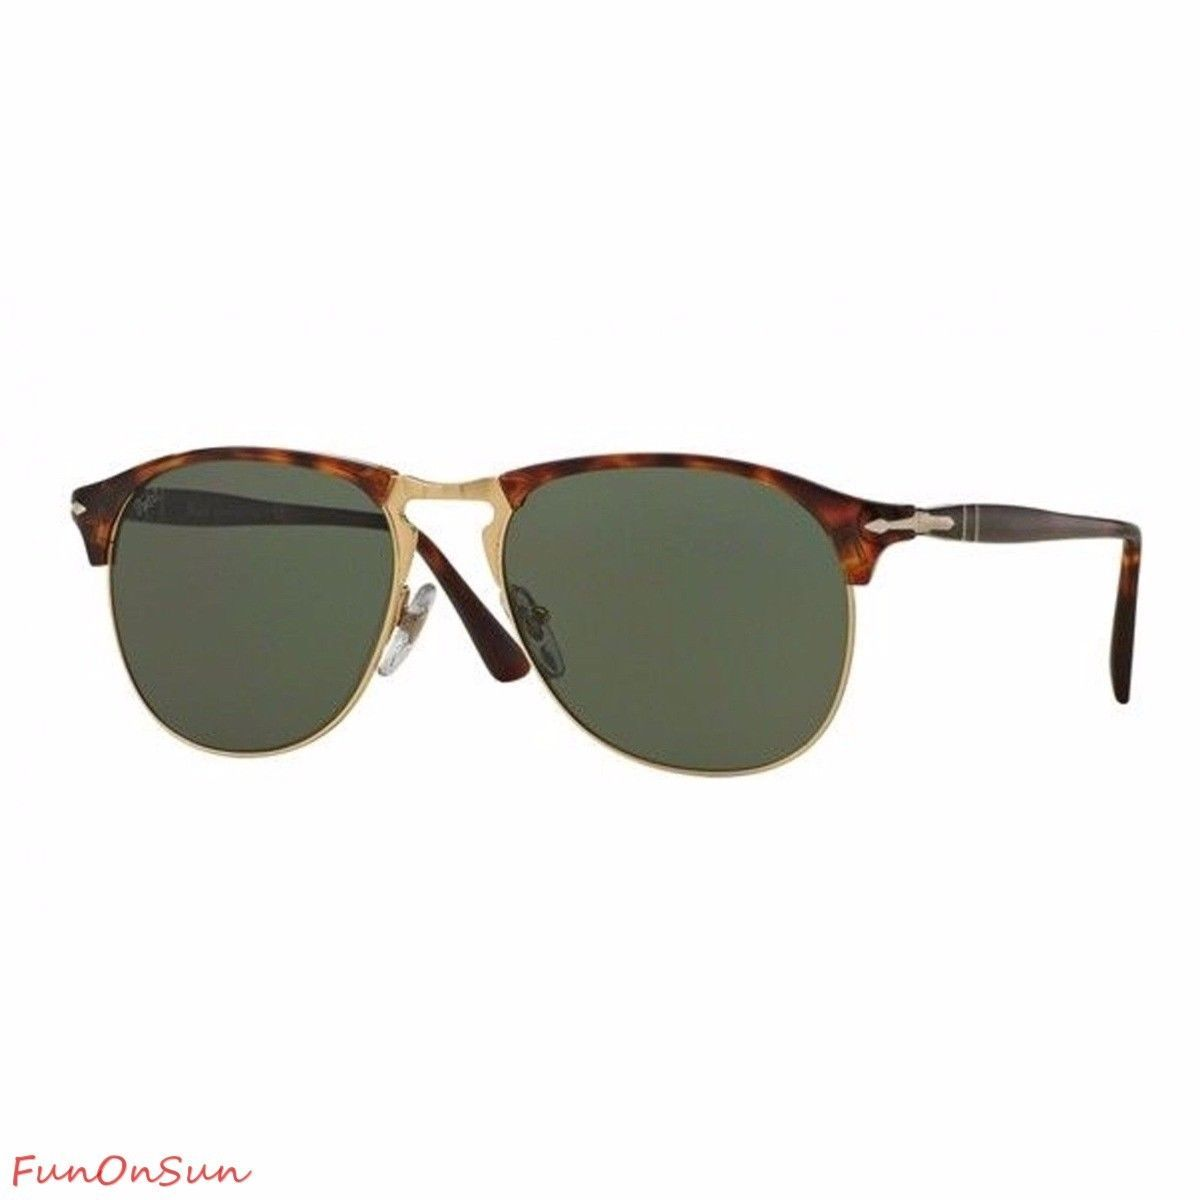 a8fb65b6b11db S l1600. S l1600. Persol Men s Sunglasses PO8649 24 31 Havana Gold Green  Lens Aviator Authentic